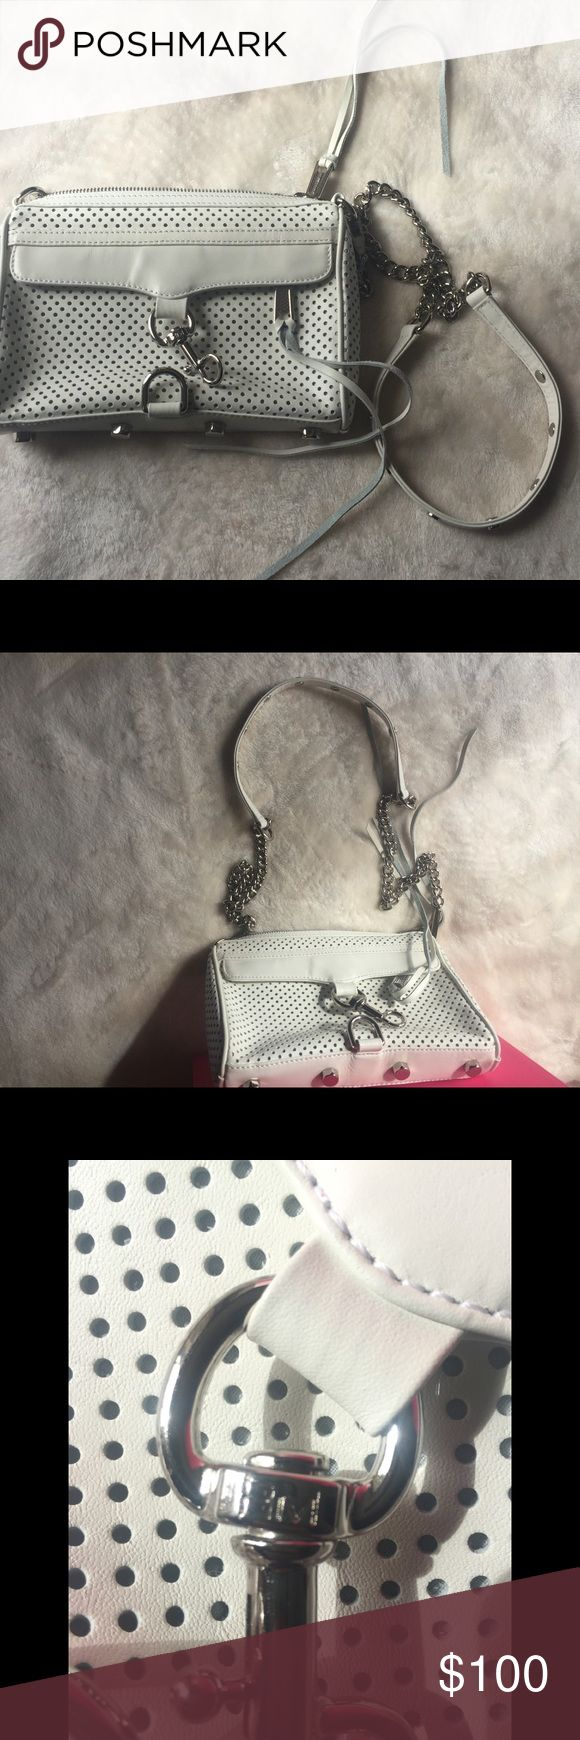 REBECCA MINKOFF CROSSBODY BAG VERY STYLISH, CUTE AND GIRLY CROSSBODY BAG ( NWOT) FEEL FREE TO ASK ANY QUESTIONS! Rebecca Minkoff Bags Crossbody Bags